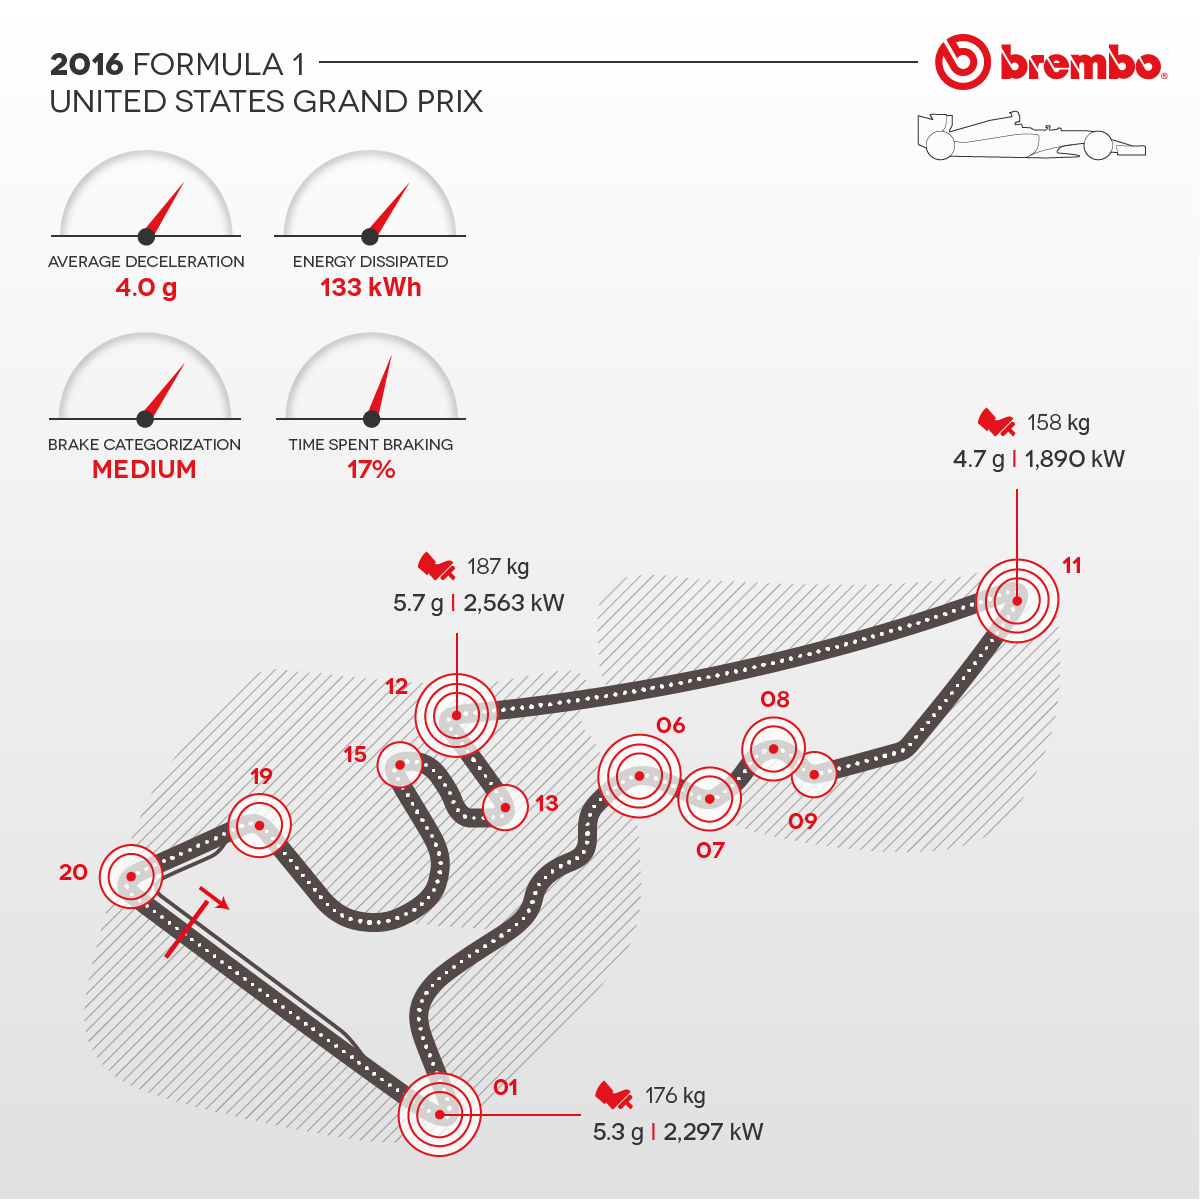 Detailed representation of the 2016 United States GP with curves detail Brembo